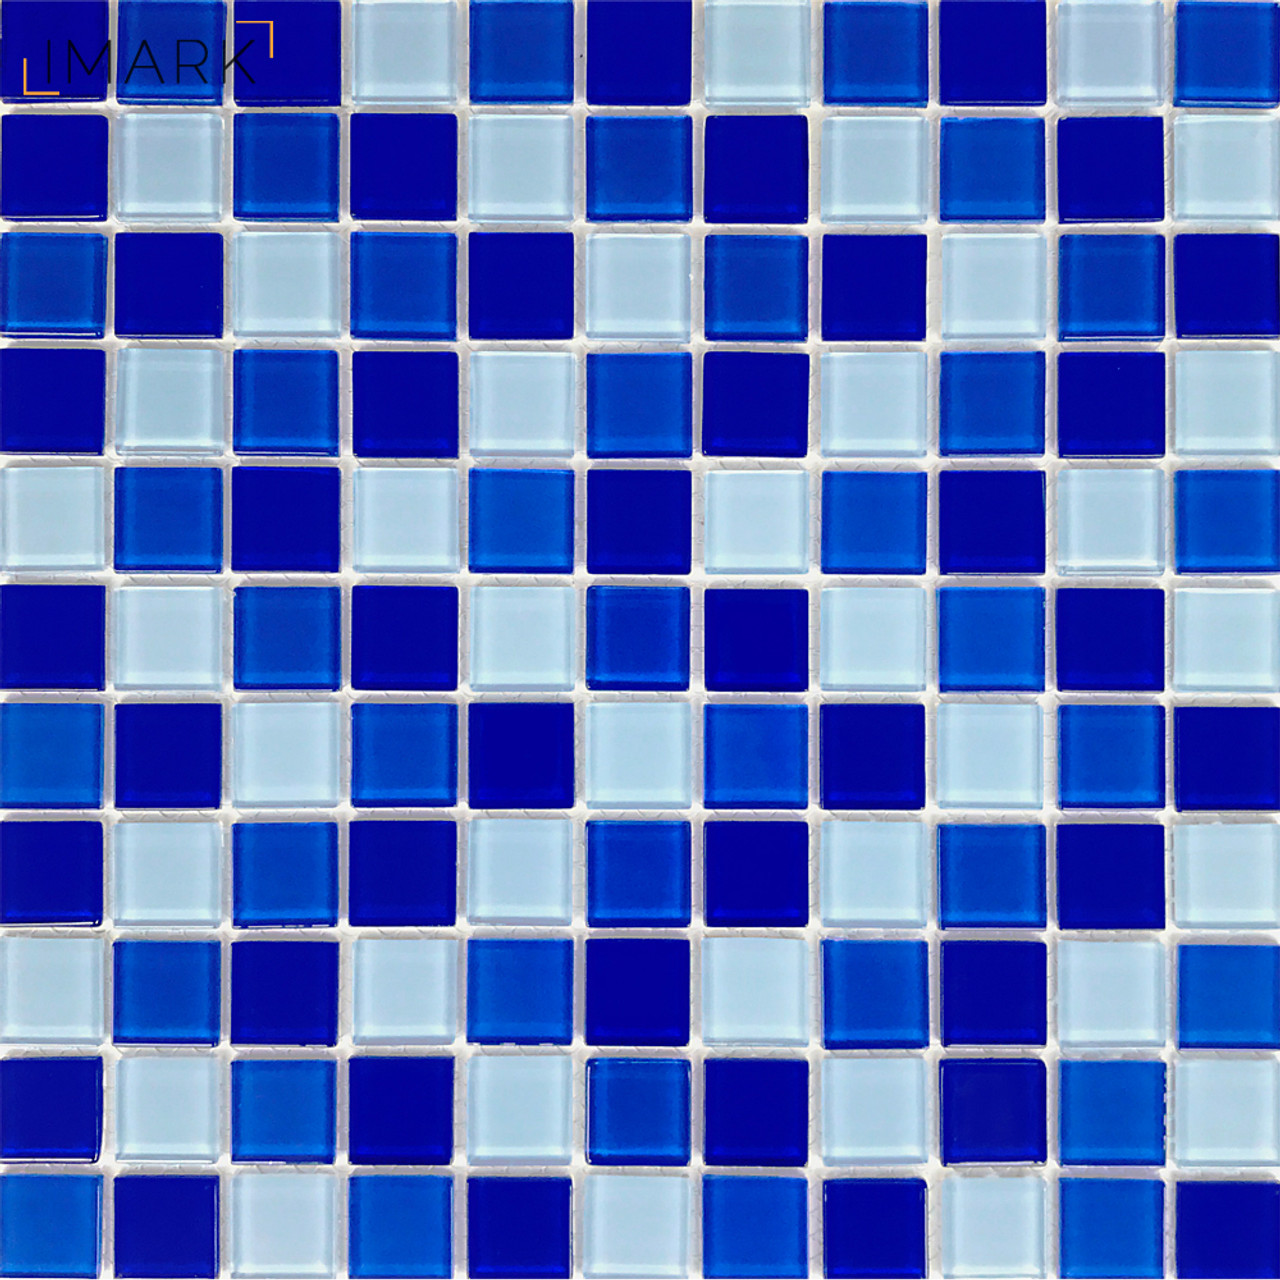 Cobalt Blue Glass Mosaic Tile Backsplash For Kitchen Wall Stickers